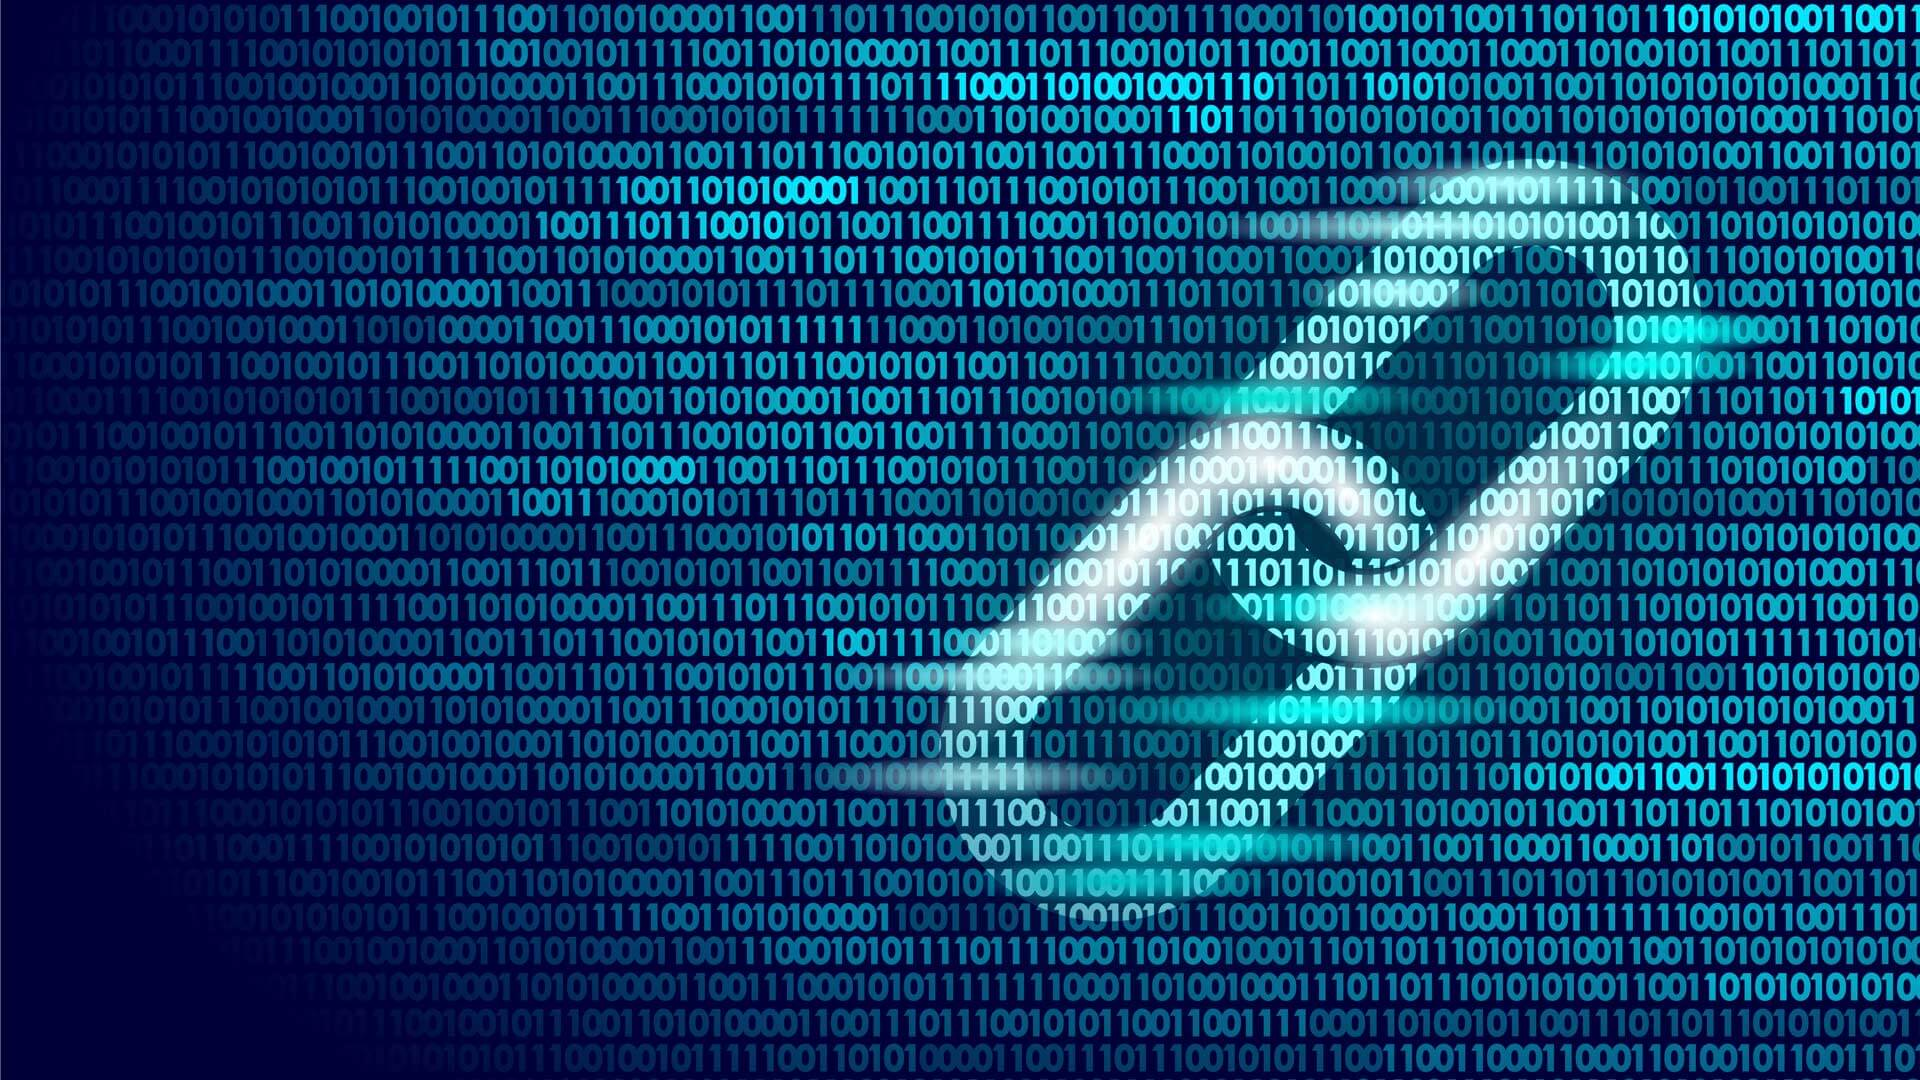 Why Blockchain is Considered as Most Powerful Technology